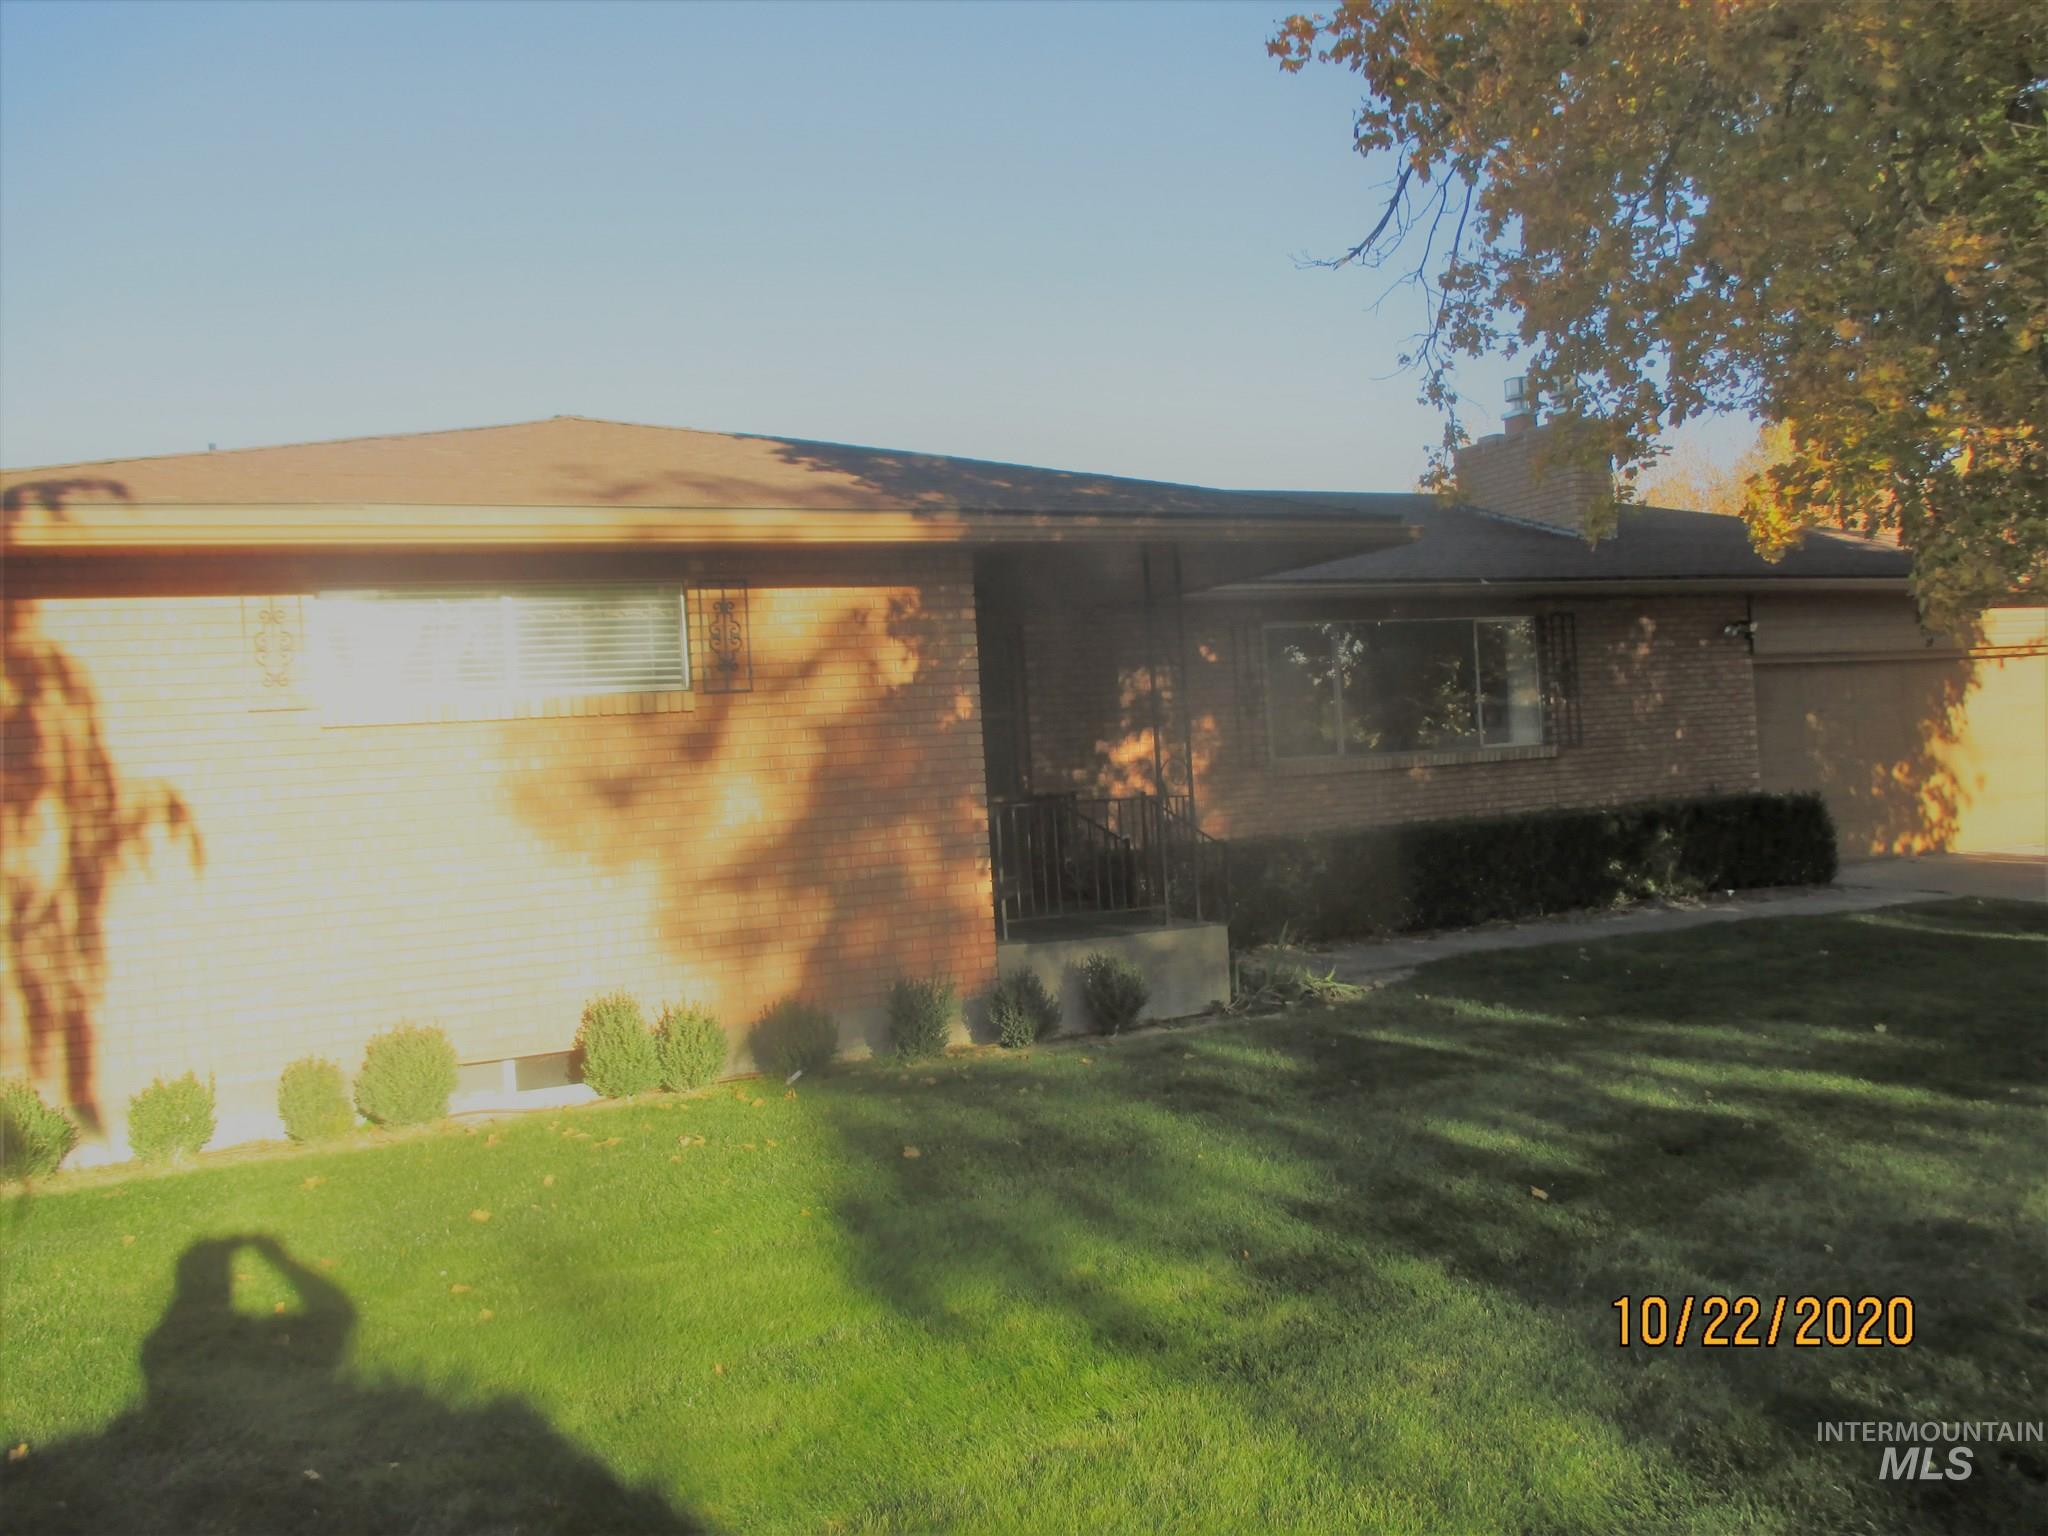 569 Butte Drive, Twin Falls, Idaho 83301, 3 Bedrooms, 2 Bathrooms, Residential For Sale, Price $285,000, 98784689